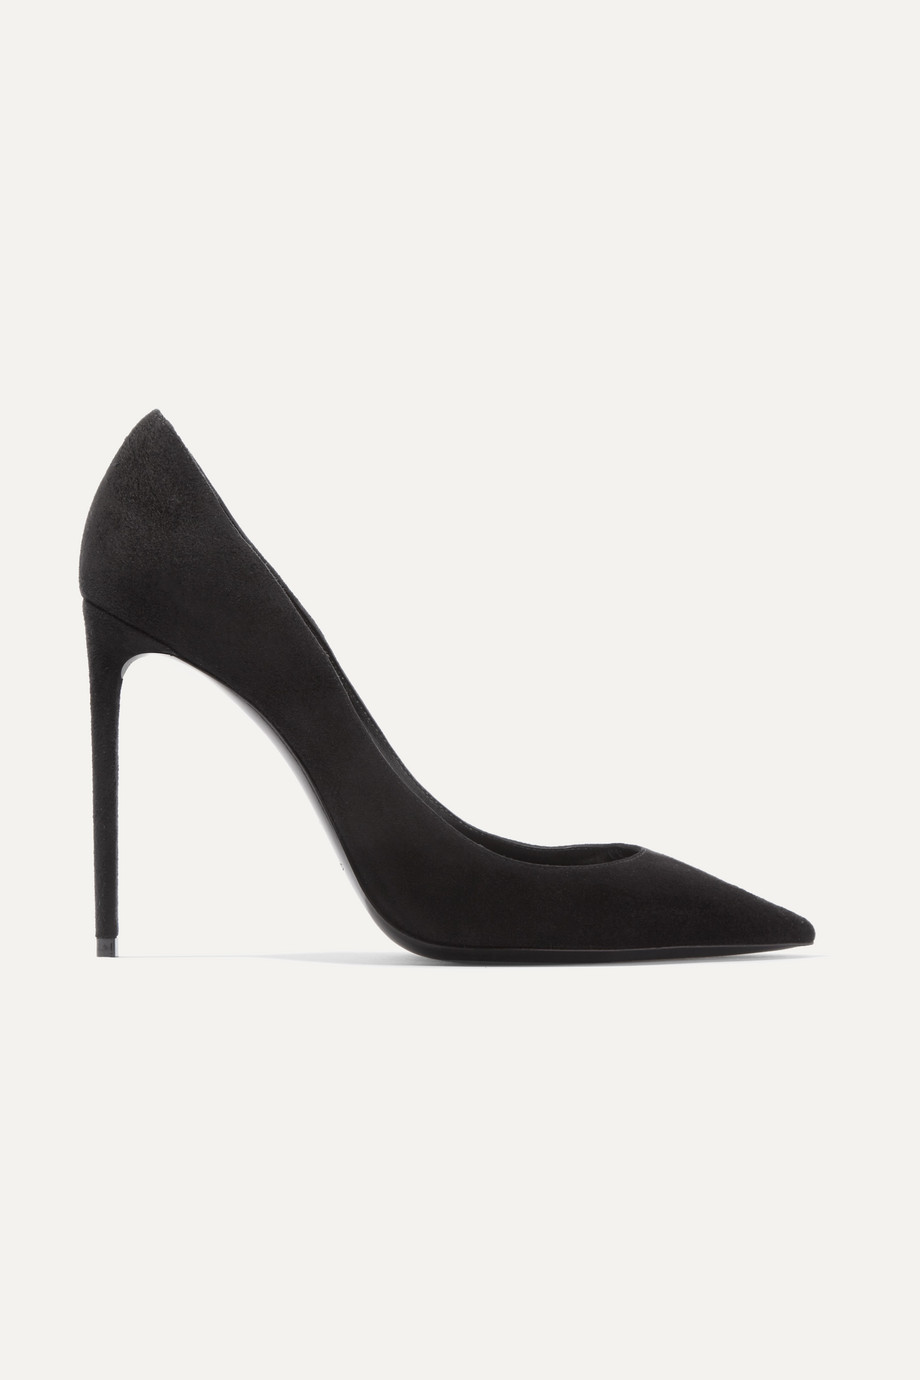 SAINT LAURENT Zoe suede pumps